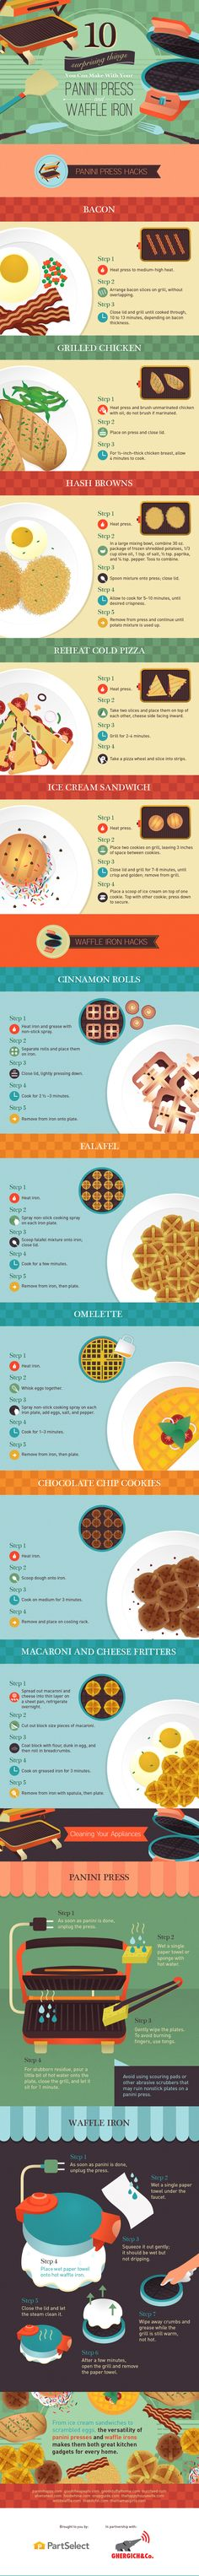 I have always wanted to make some of these cool recipes in the waffle iron, but now they have ones for the panini press too.  Mac & cheese even!